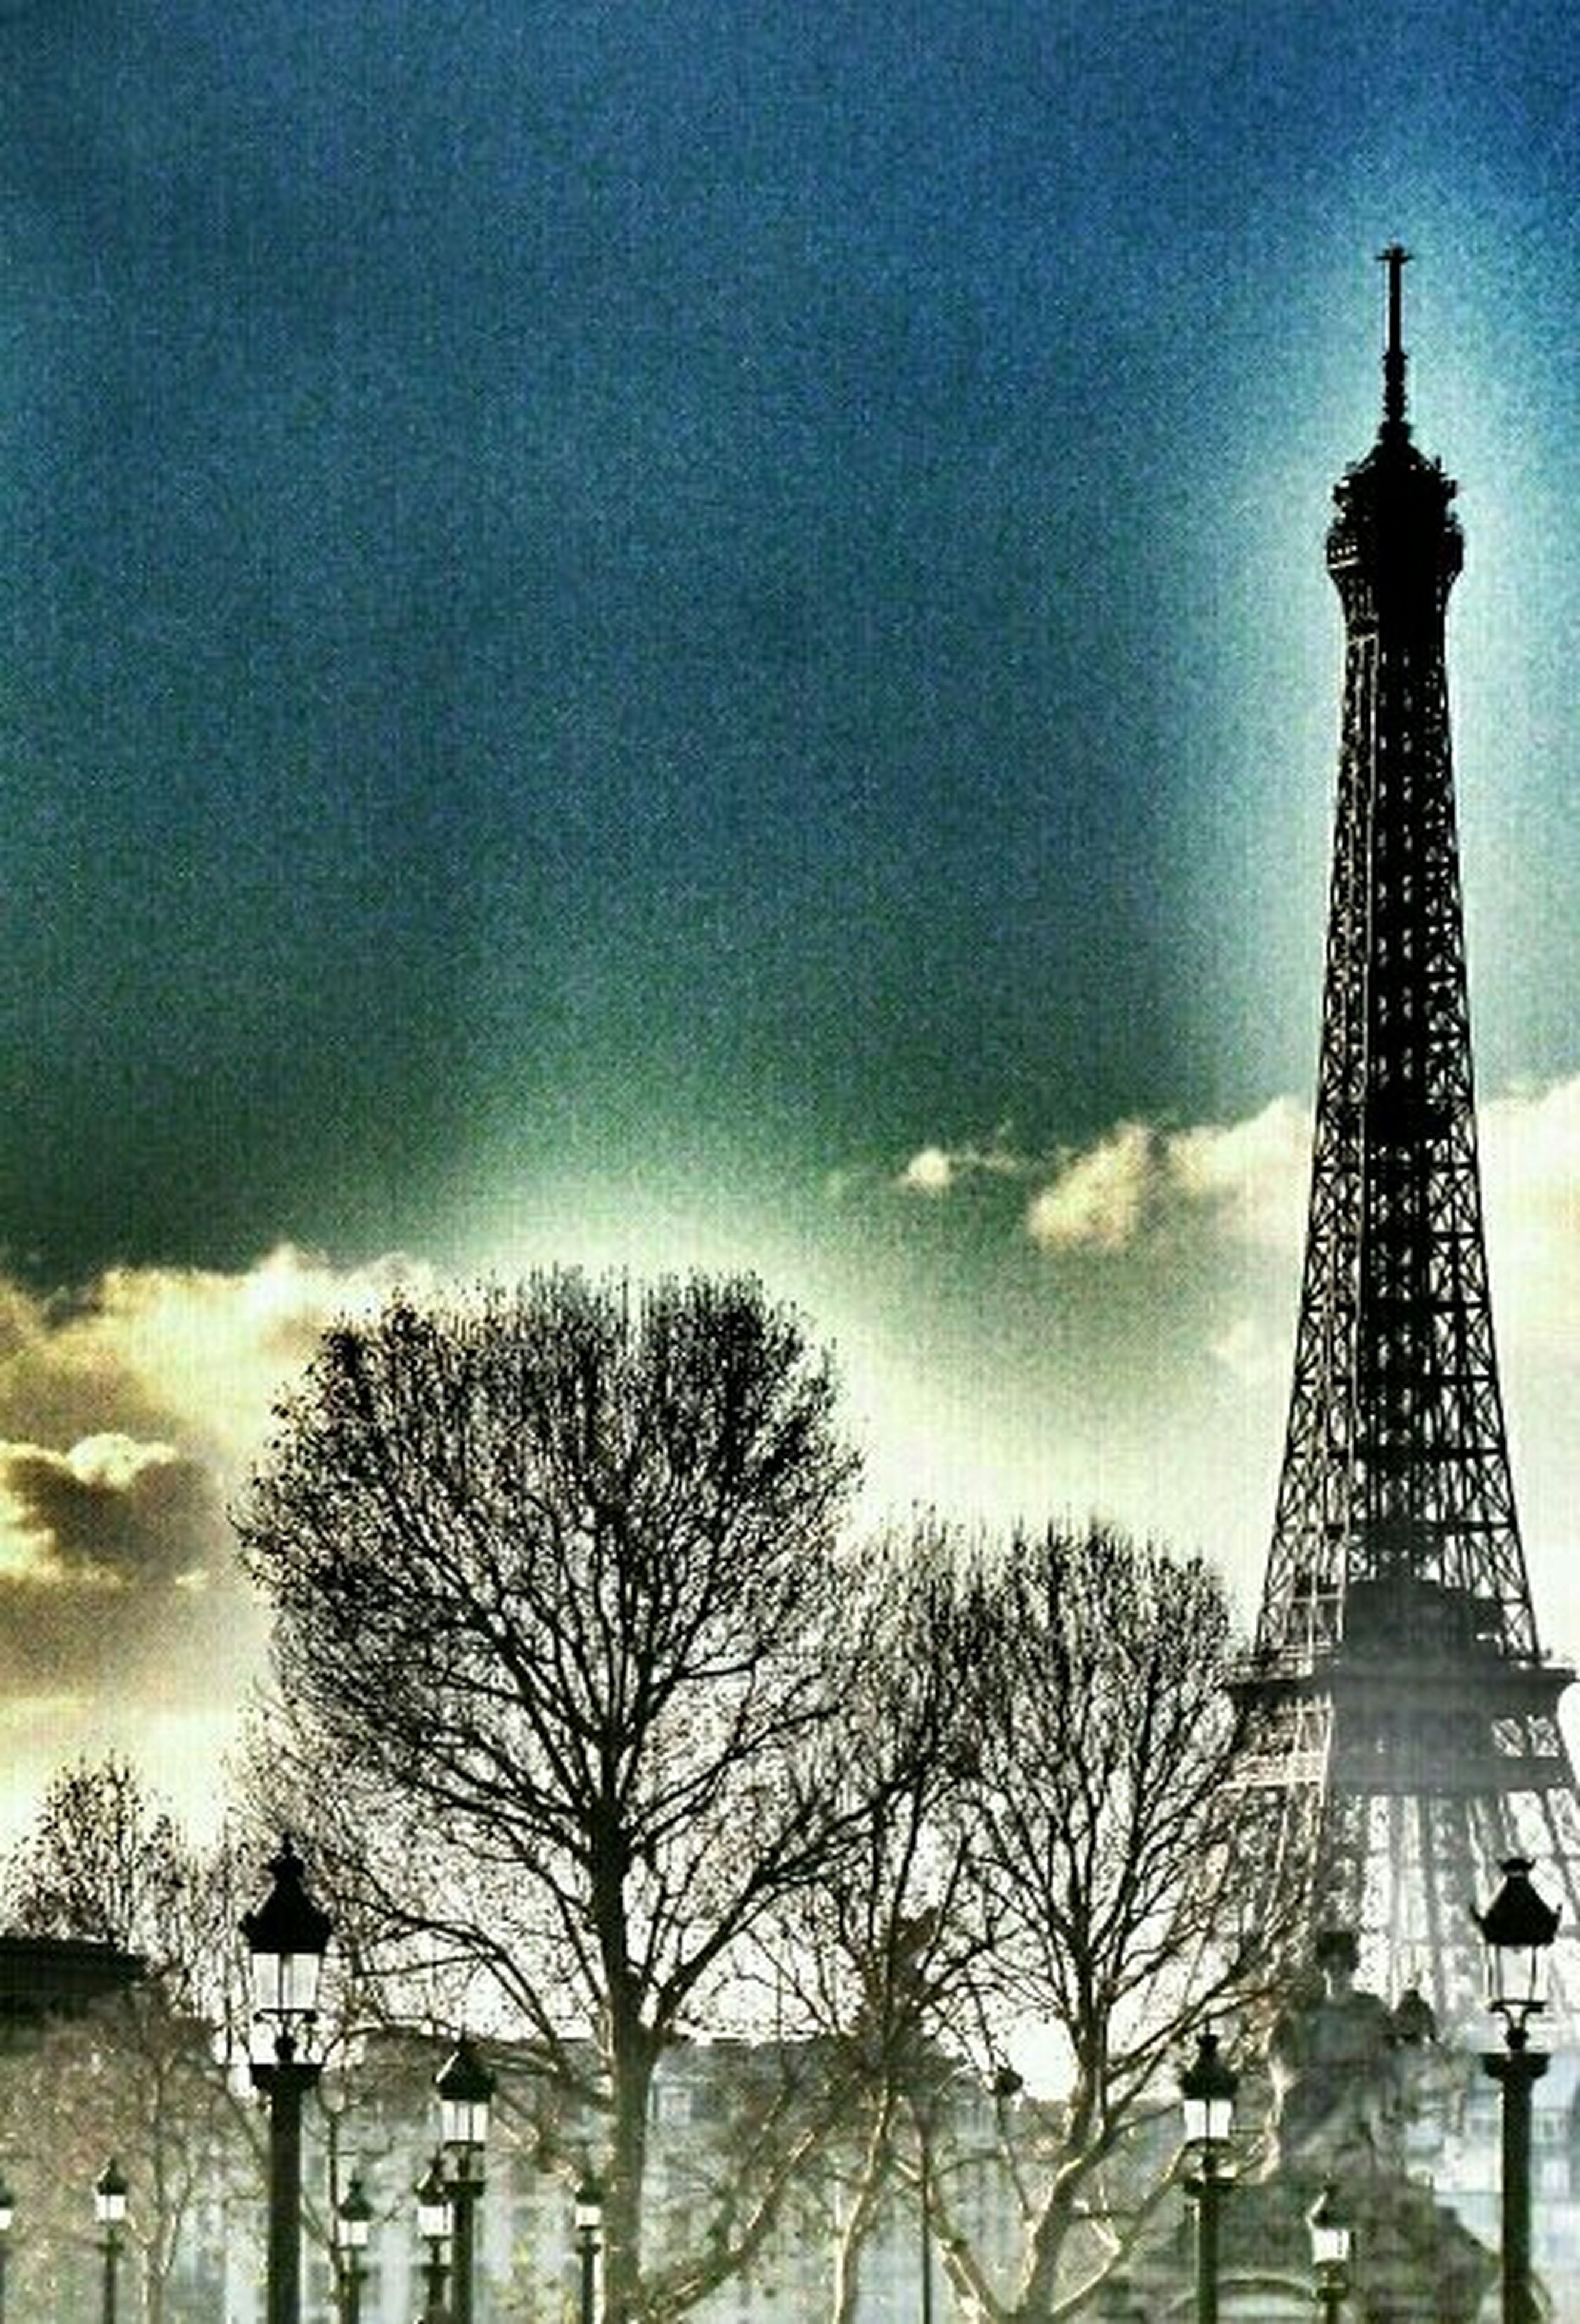 built structure, architecture, tower, building exterior, sky, low angle view, tall - high, cloud - sky, tree, bare tree, travel destinations, cloudy, international landmark, famous place, communications tower, eiffel tower, city, no people, cloud, history